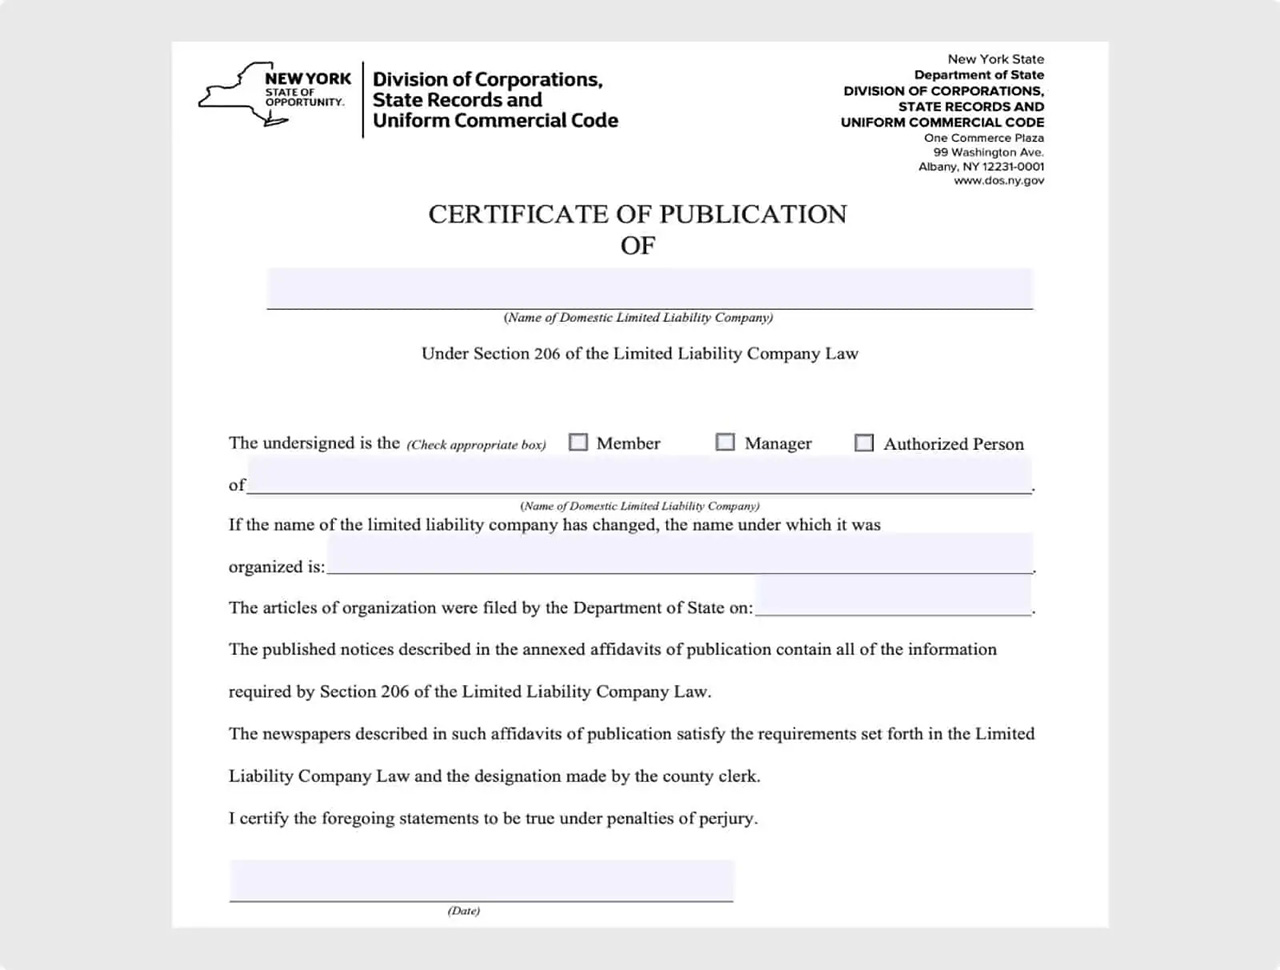 New LLCs in New York must complete the publication requirements form